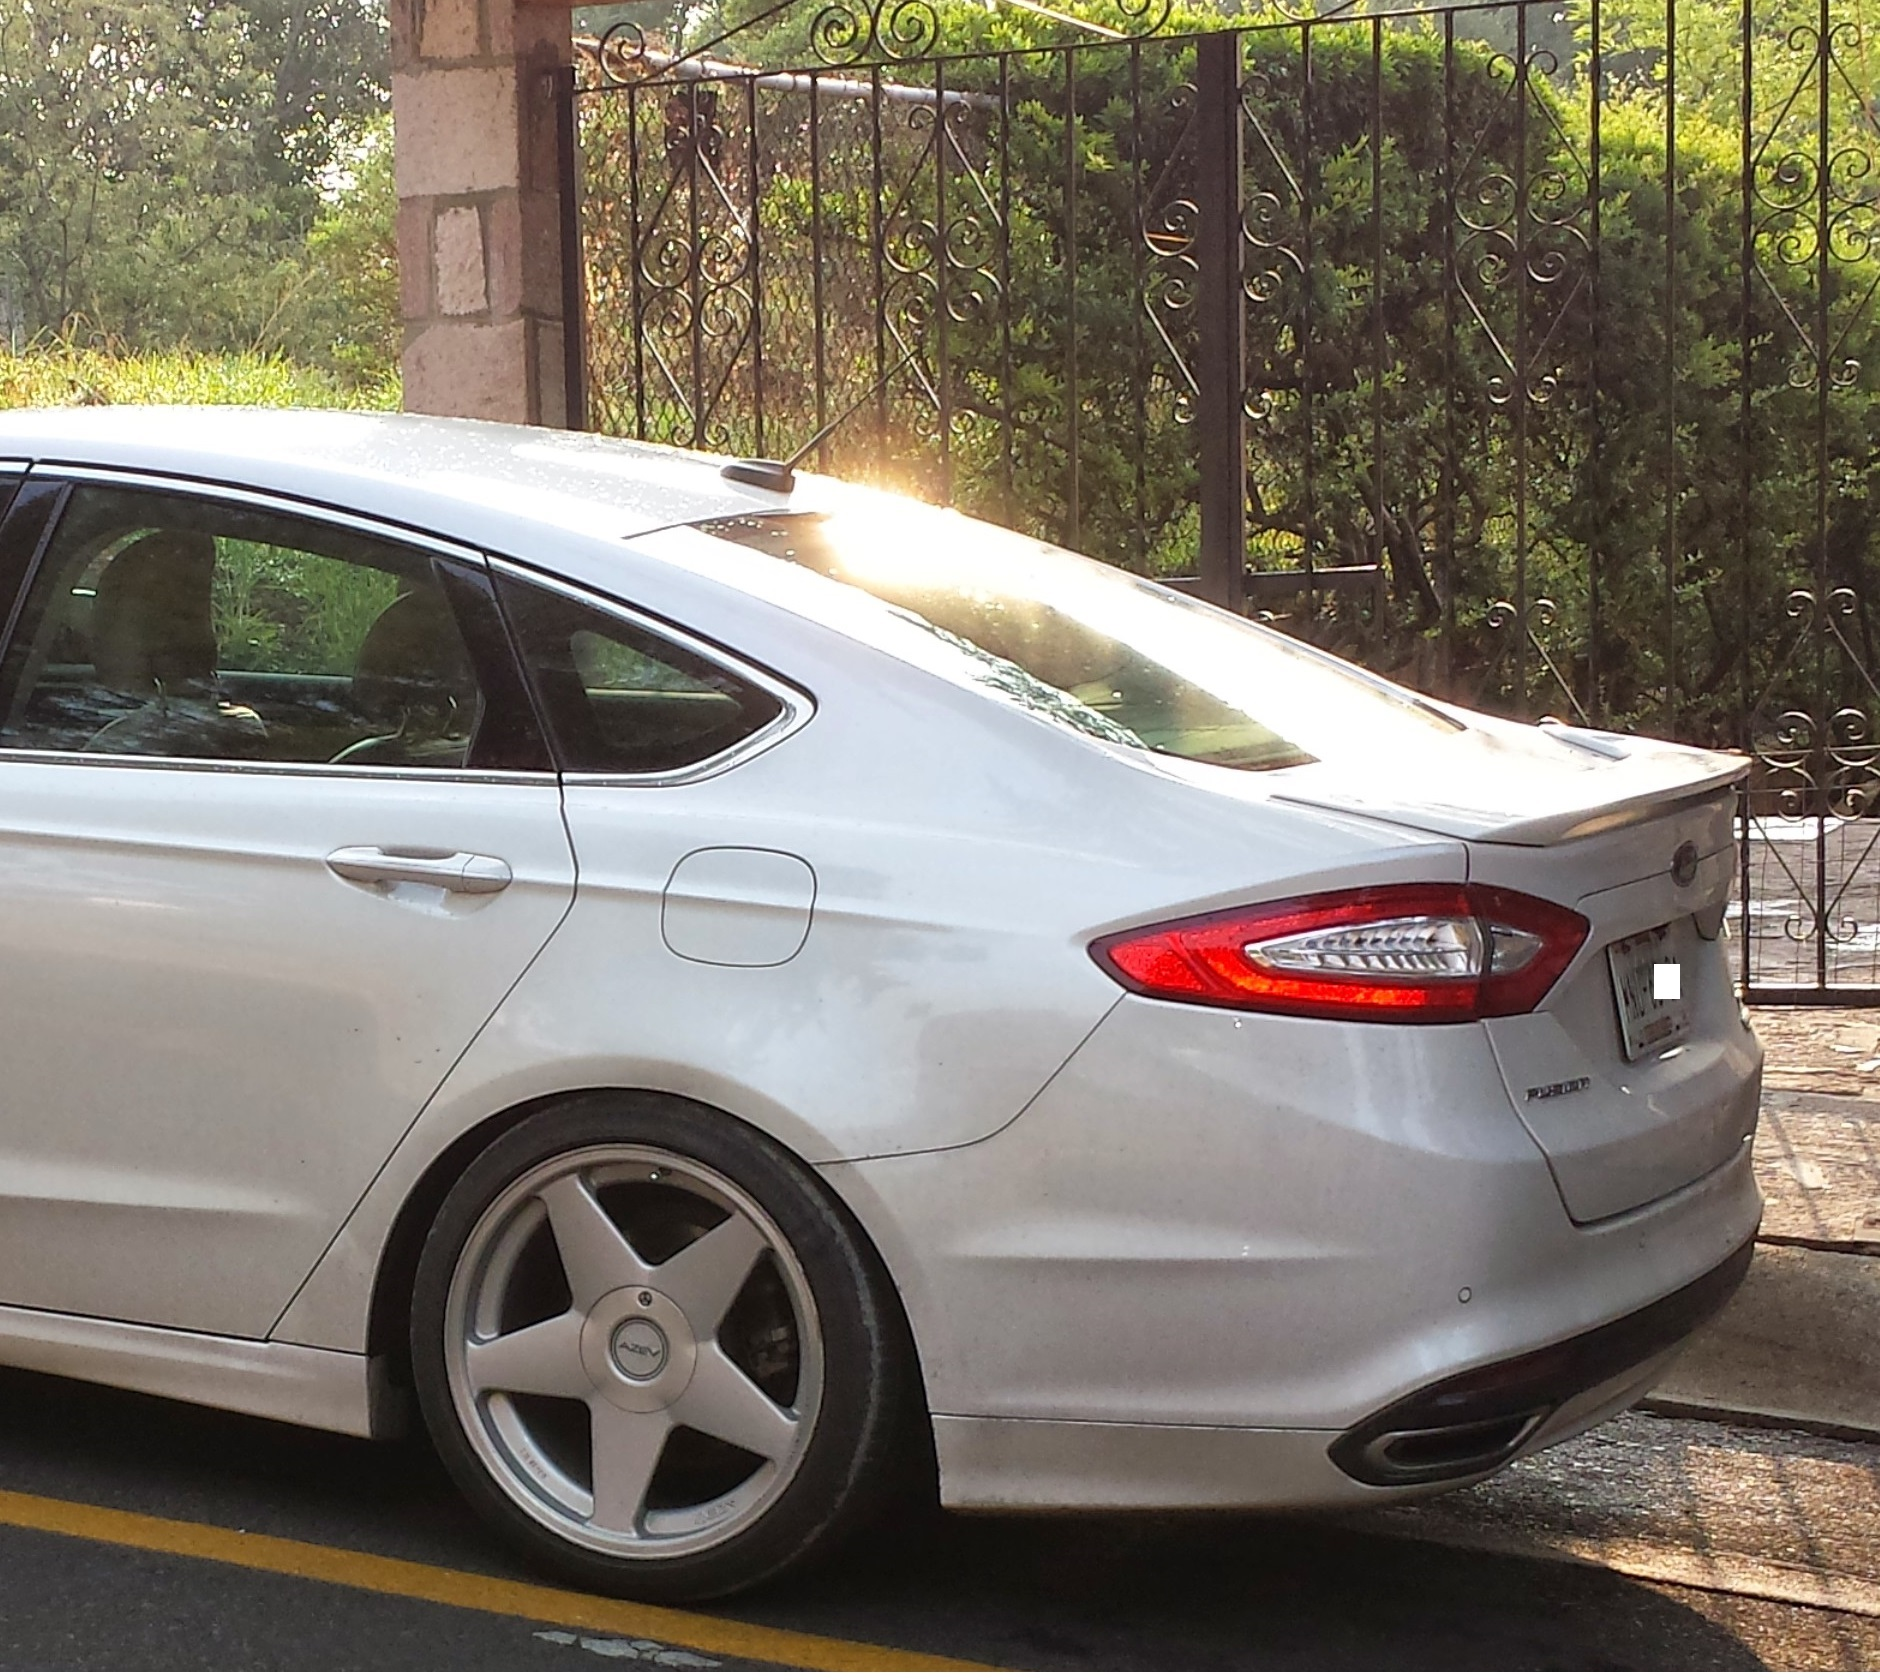 2013 Ford Fusion Exterior: Ranadegre 2013 Ford FusionSE Sedan 4D Specs, Photos